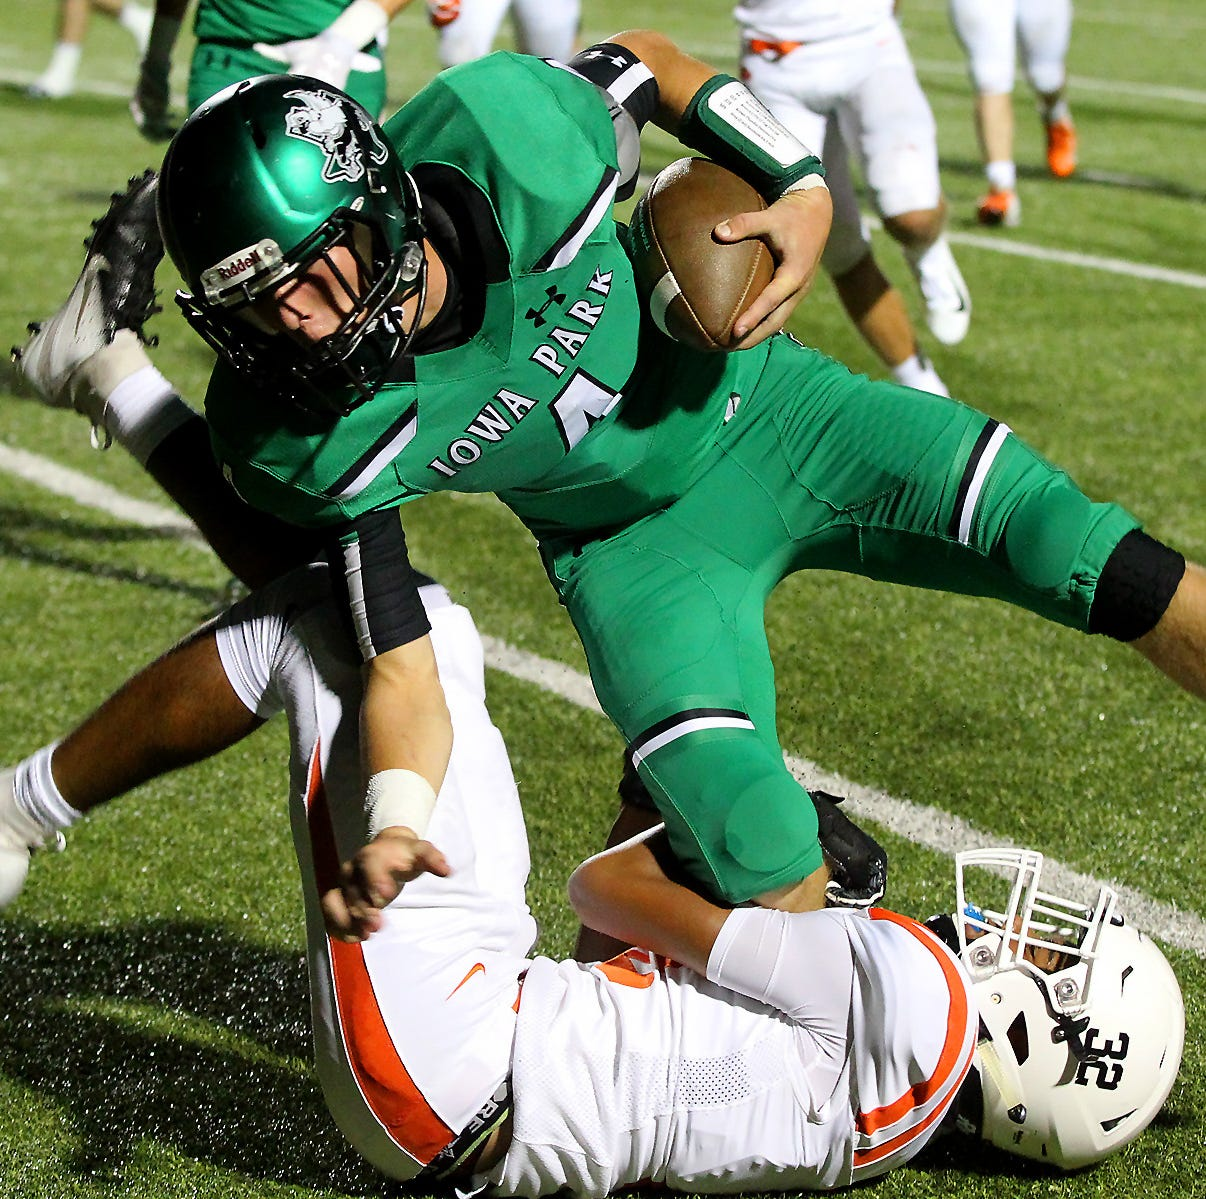 Finishing kick: Add a 2018 chapter to Burk-Iowa Park rivalry as Bulldogs win 51-49